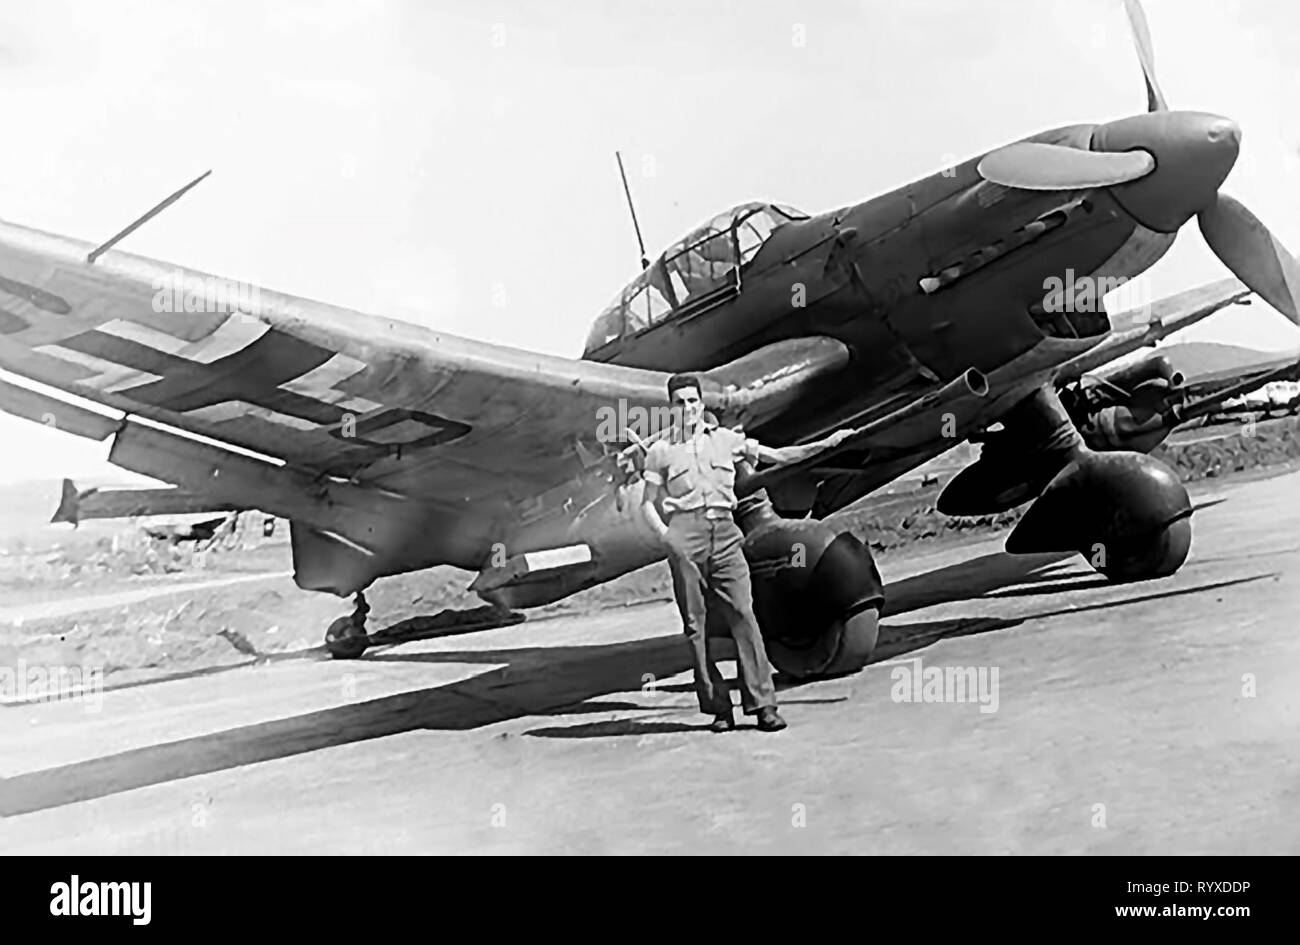 Personal photographs and memorabilia of fighting Americans during the Second World War. Caught German Junkers JU 87 dive bomber. - Stock Image